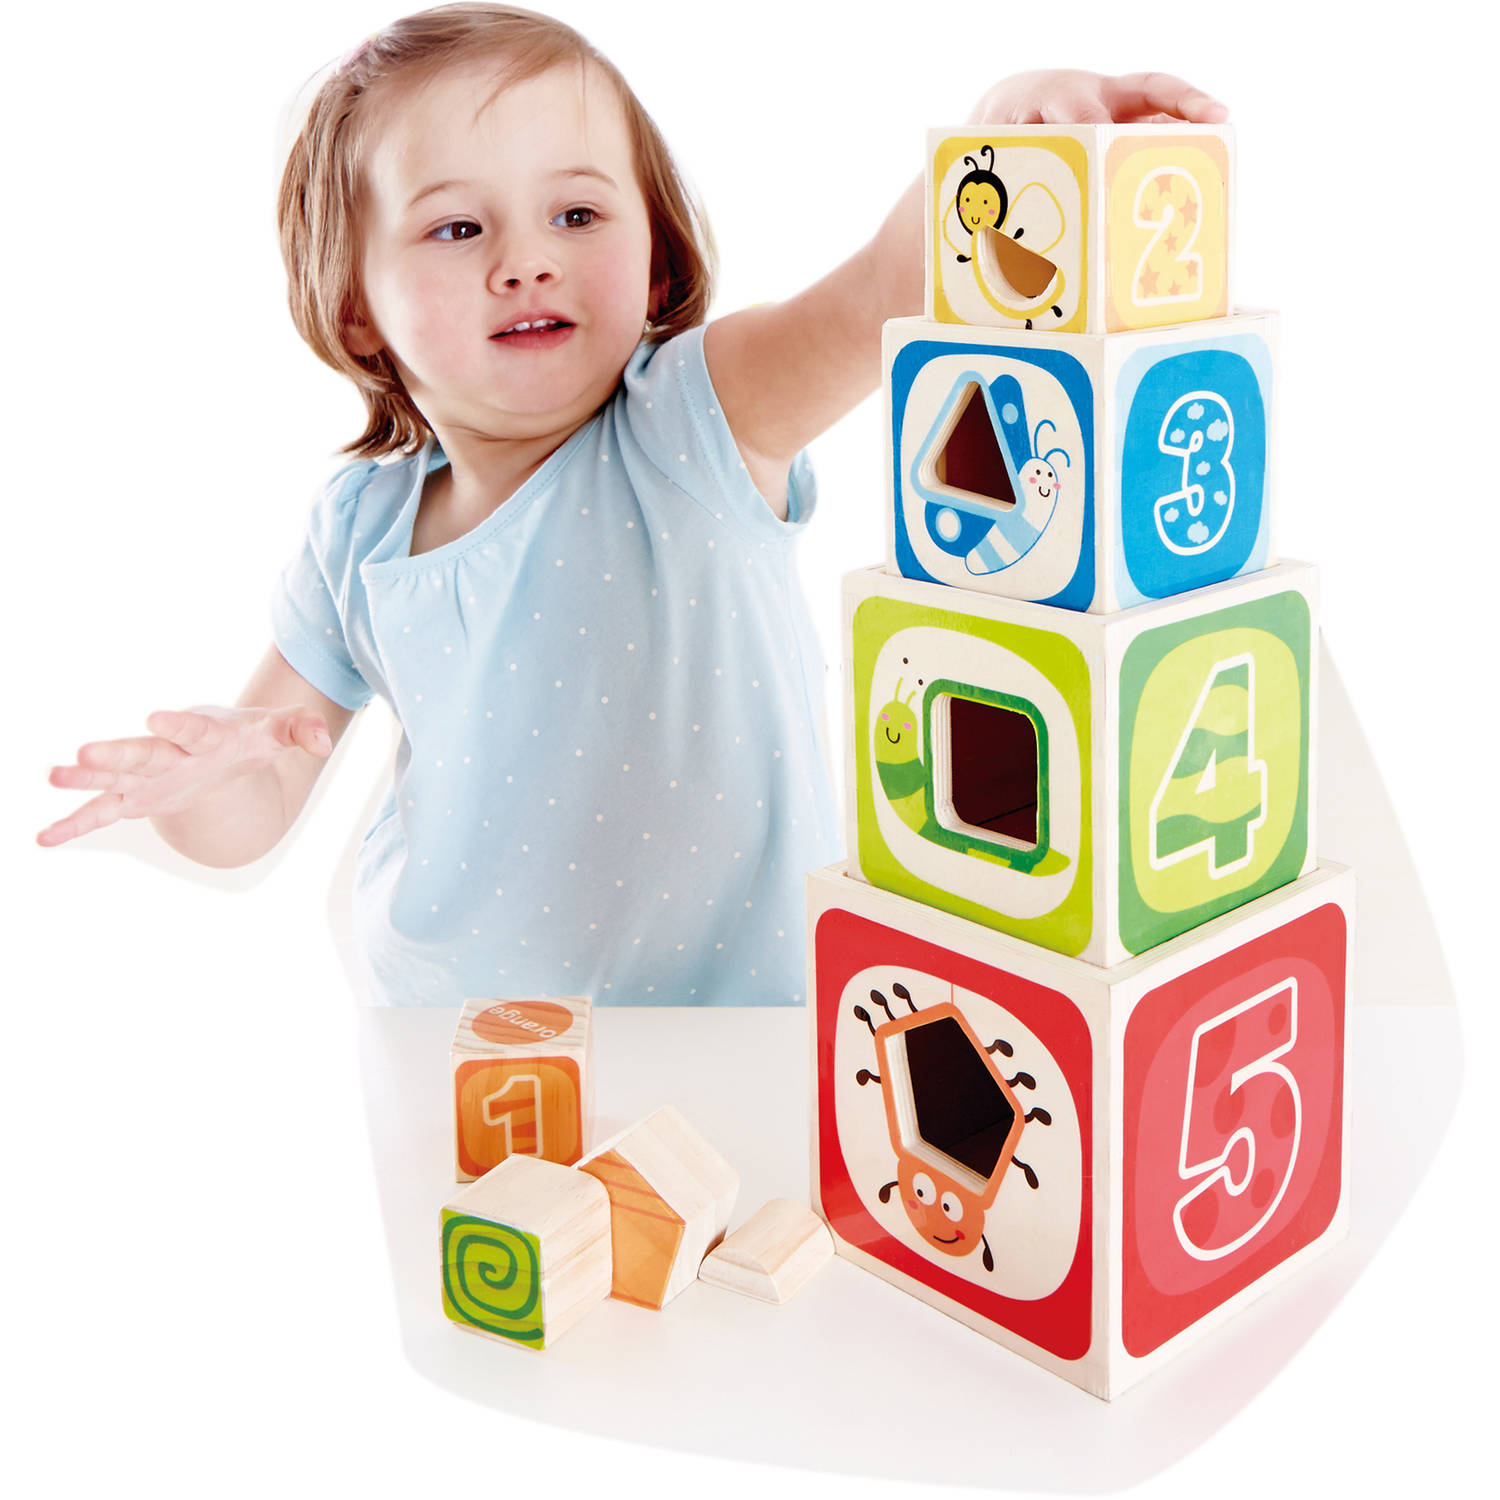 J adore ABC Nesting Blocks and Stacking Sorter Walmart